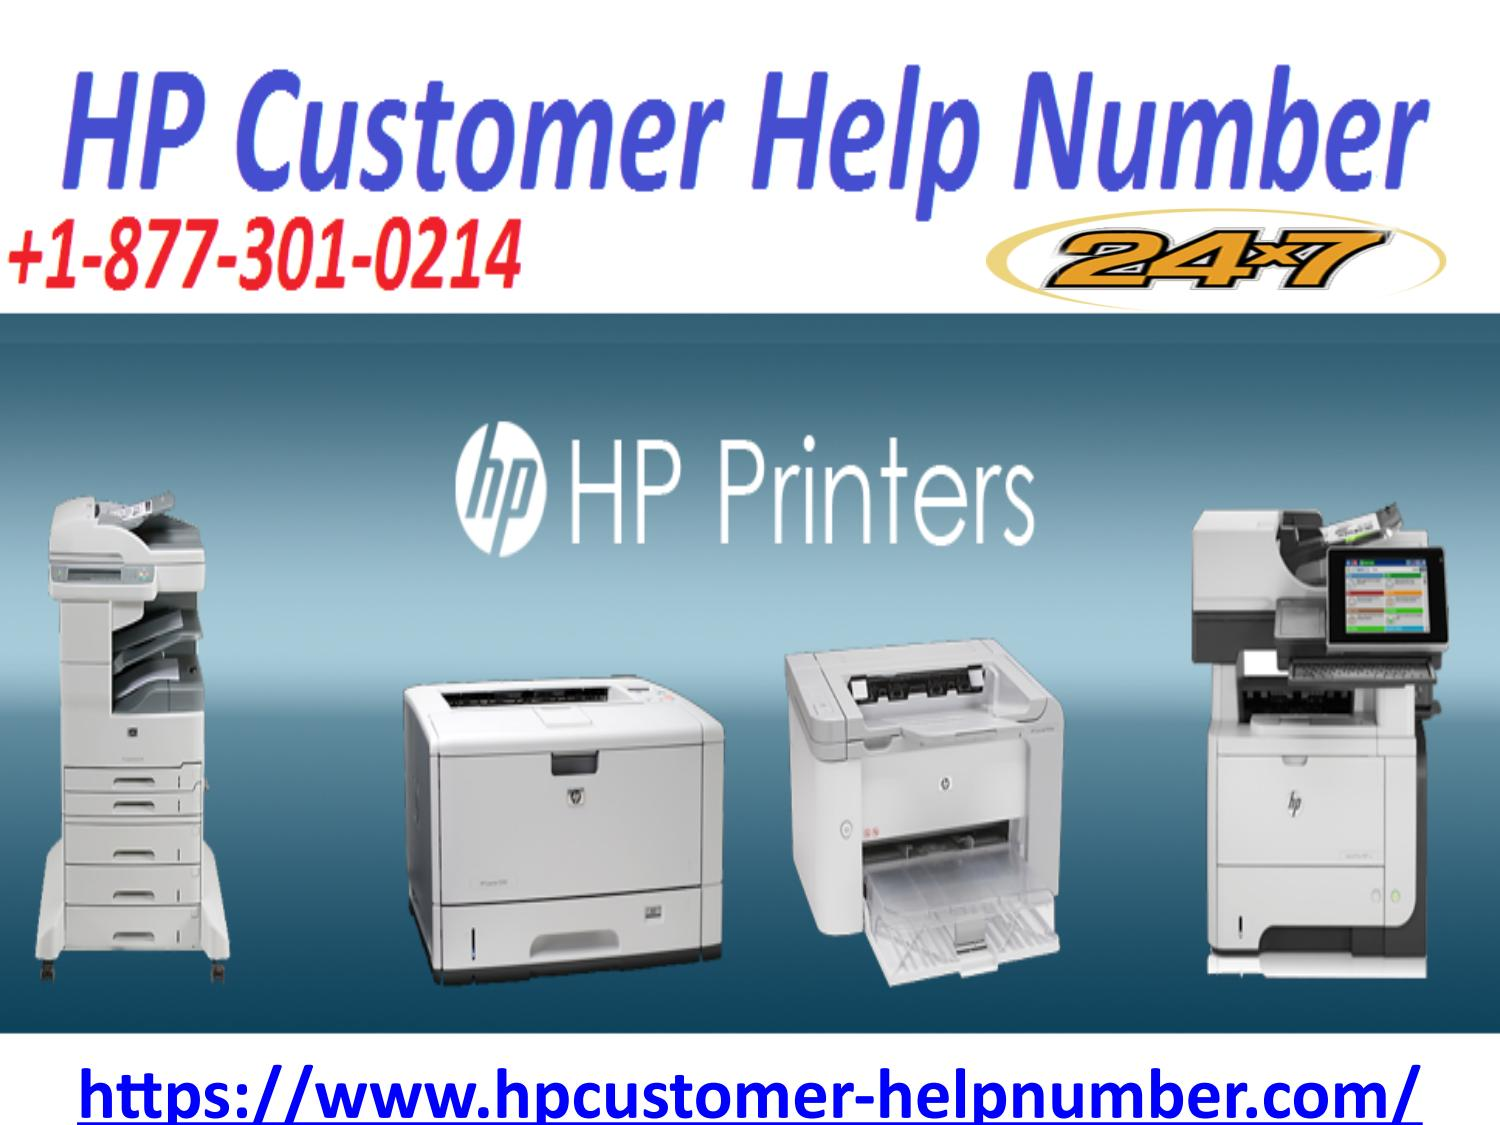 Exellent Solution For Hp Printer Issue With Hp Customer Help Number